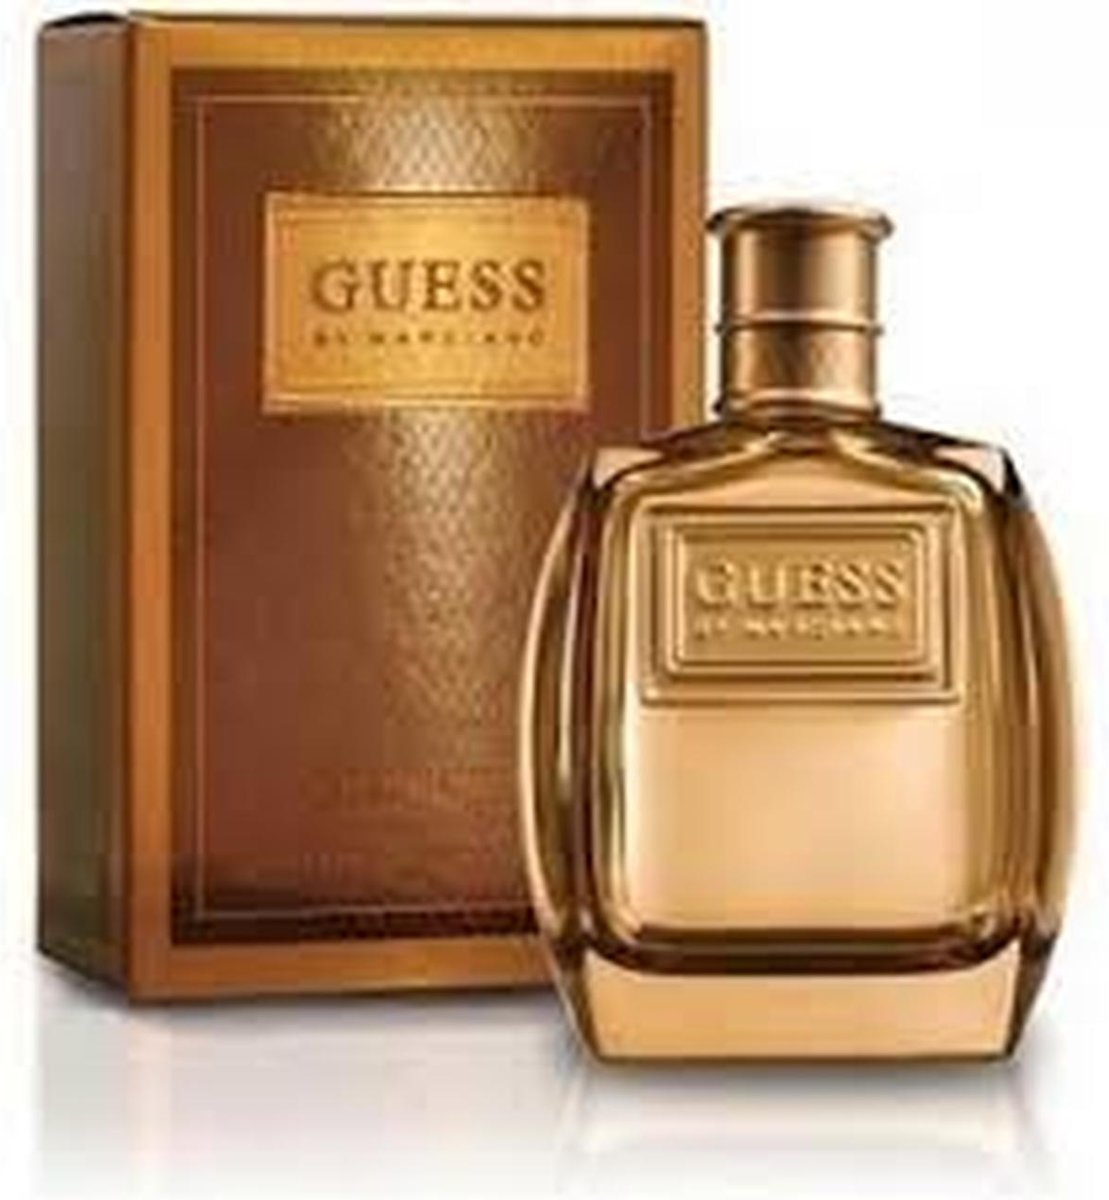 Guess Marciano 100 ml Eau de toilette for Men